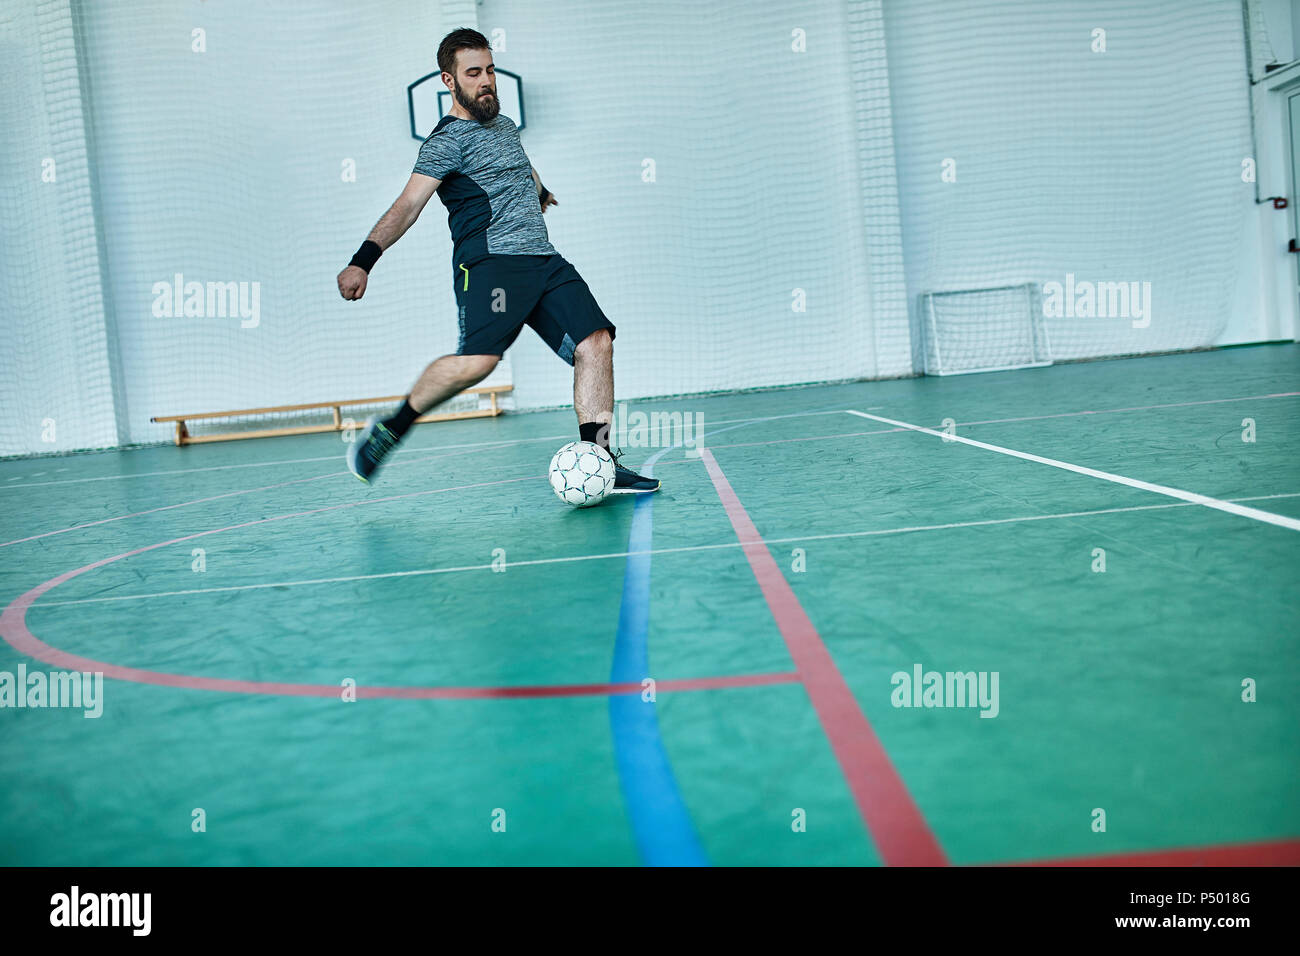 Man playing indoor soccer shooting the ball - Stock Image